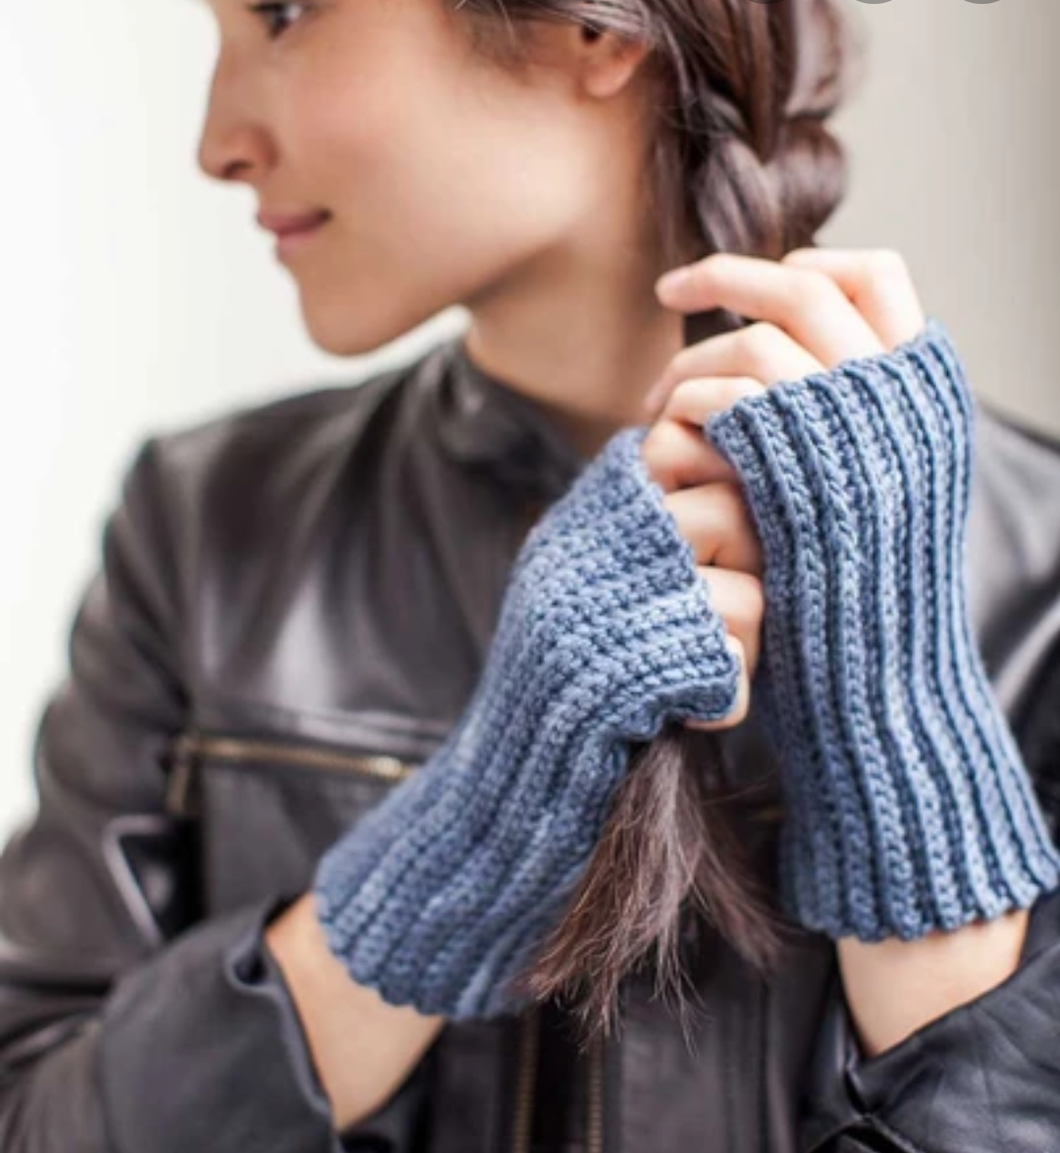 Crochetet Handwarmers: 1 stitch 3 ways